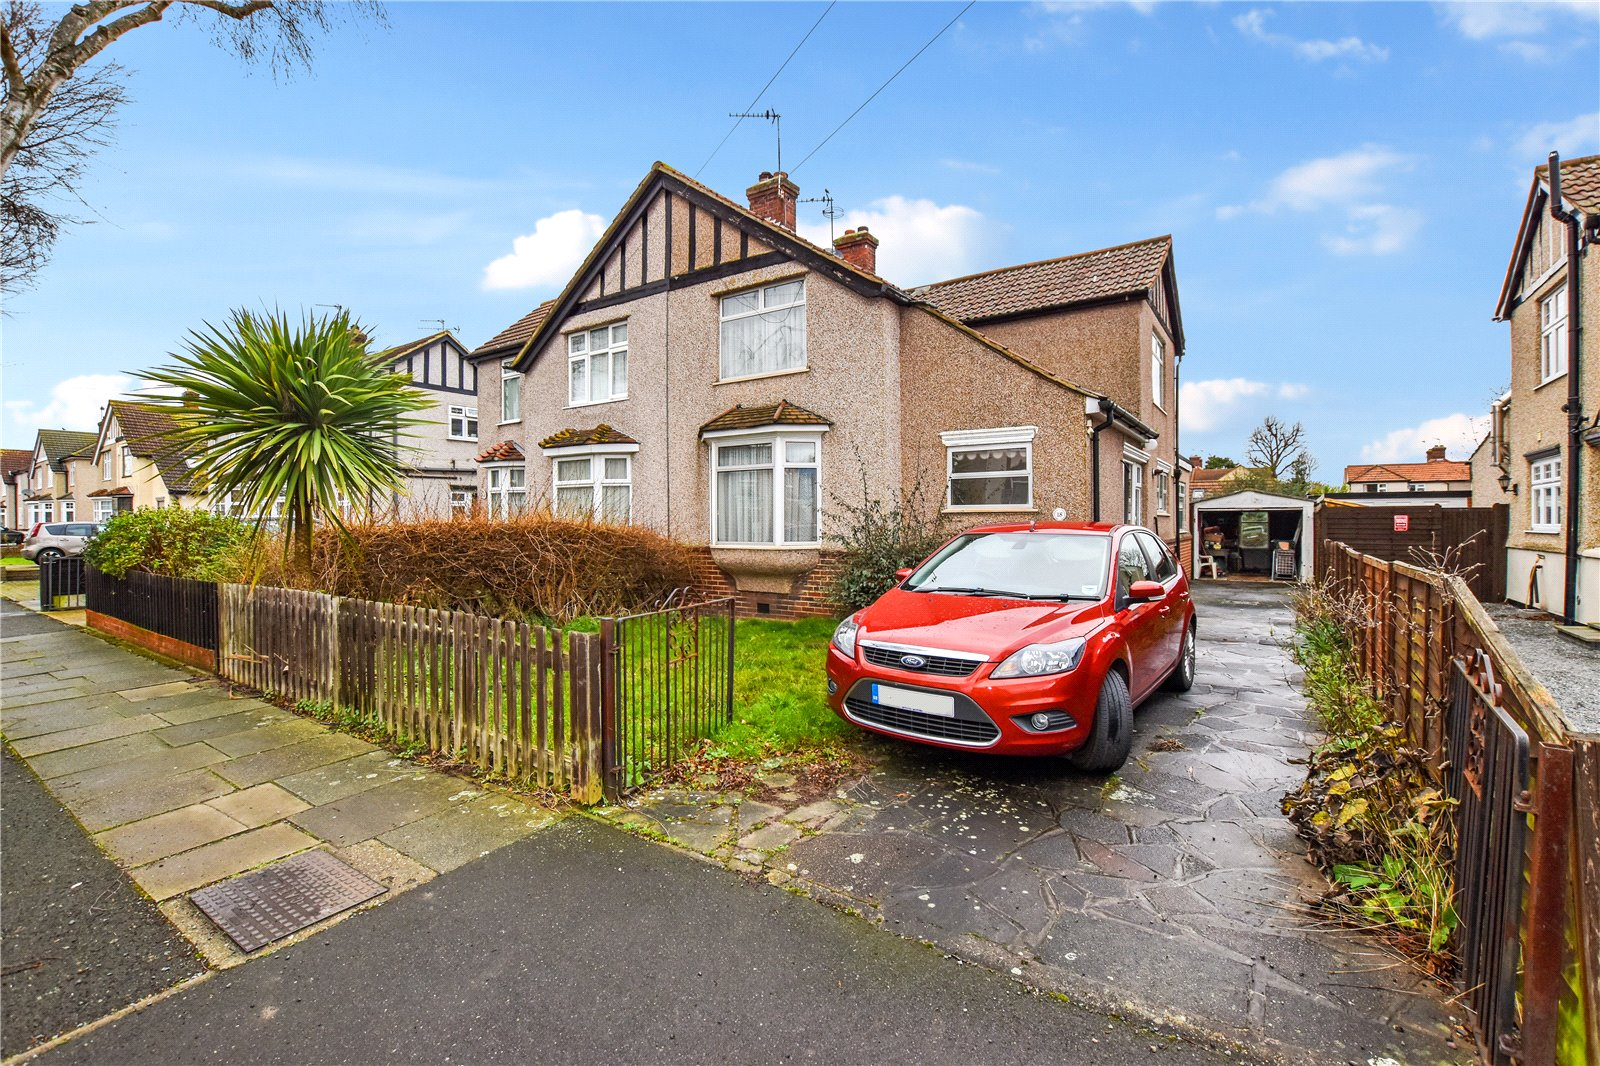 Nursery Avenue, Bexleyheath, DA7